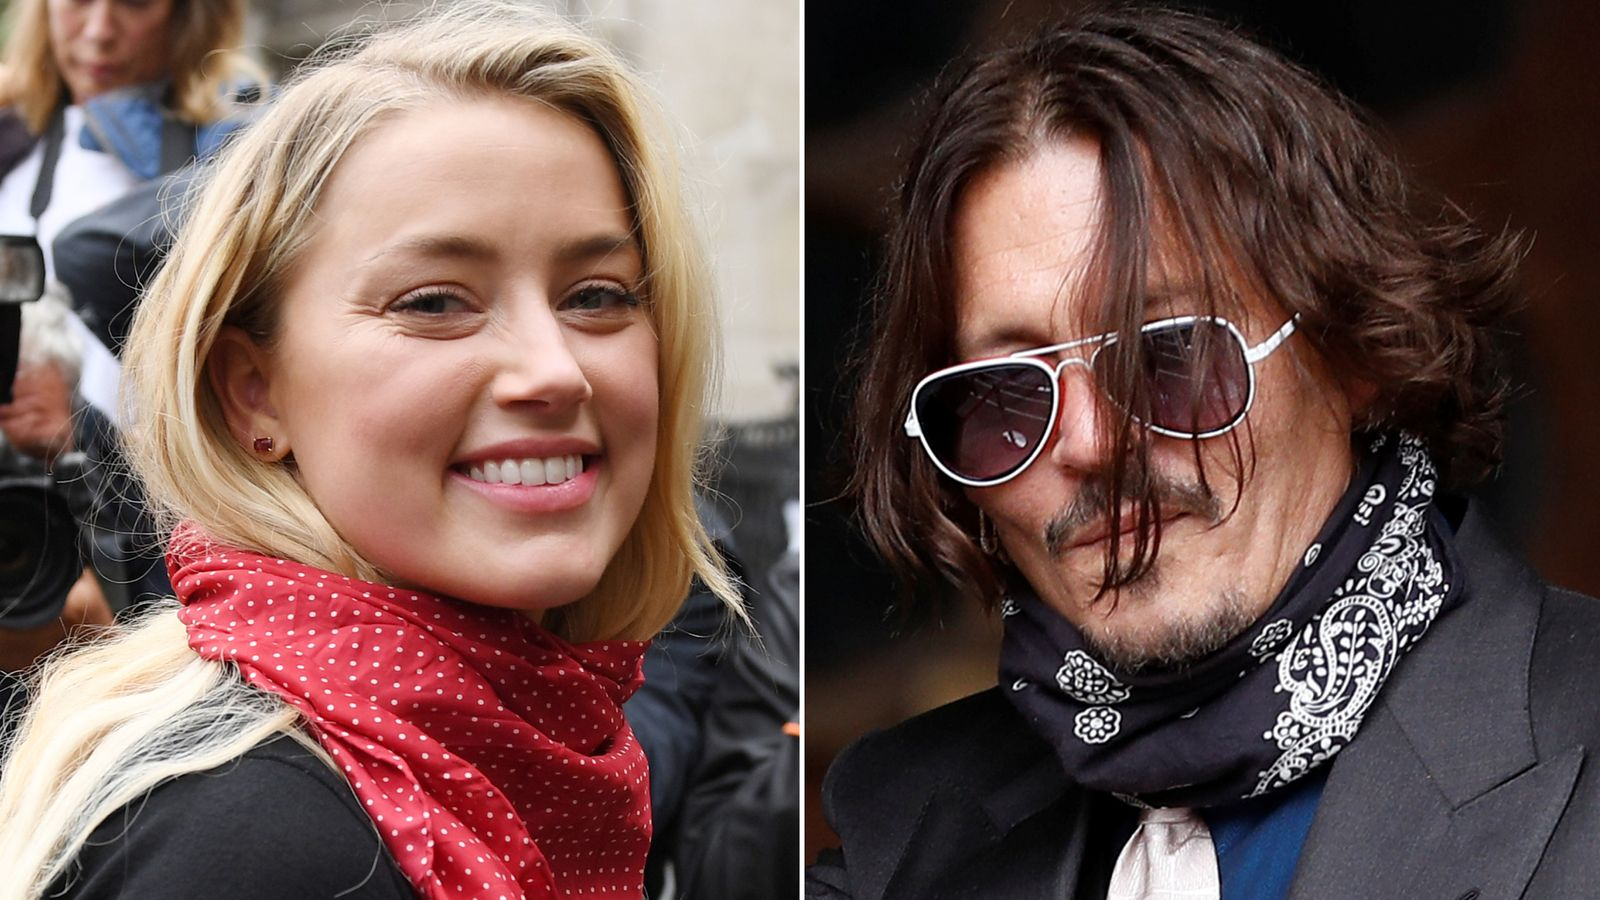 Amber Heard was married to actor Johnny Depp from 2015 to 2017